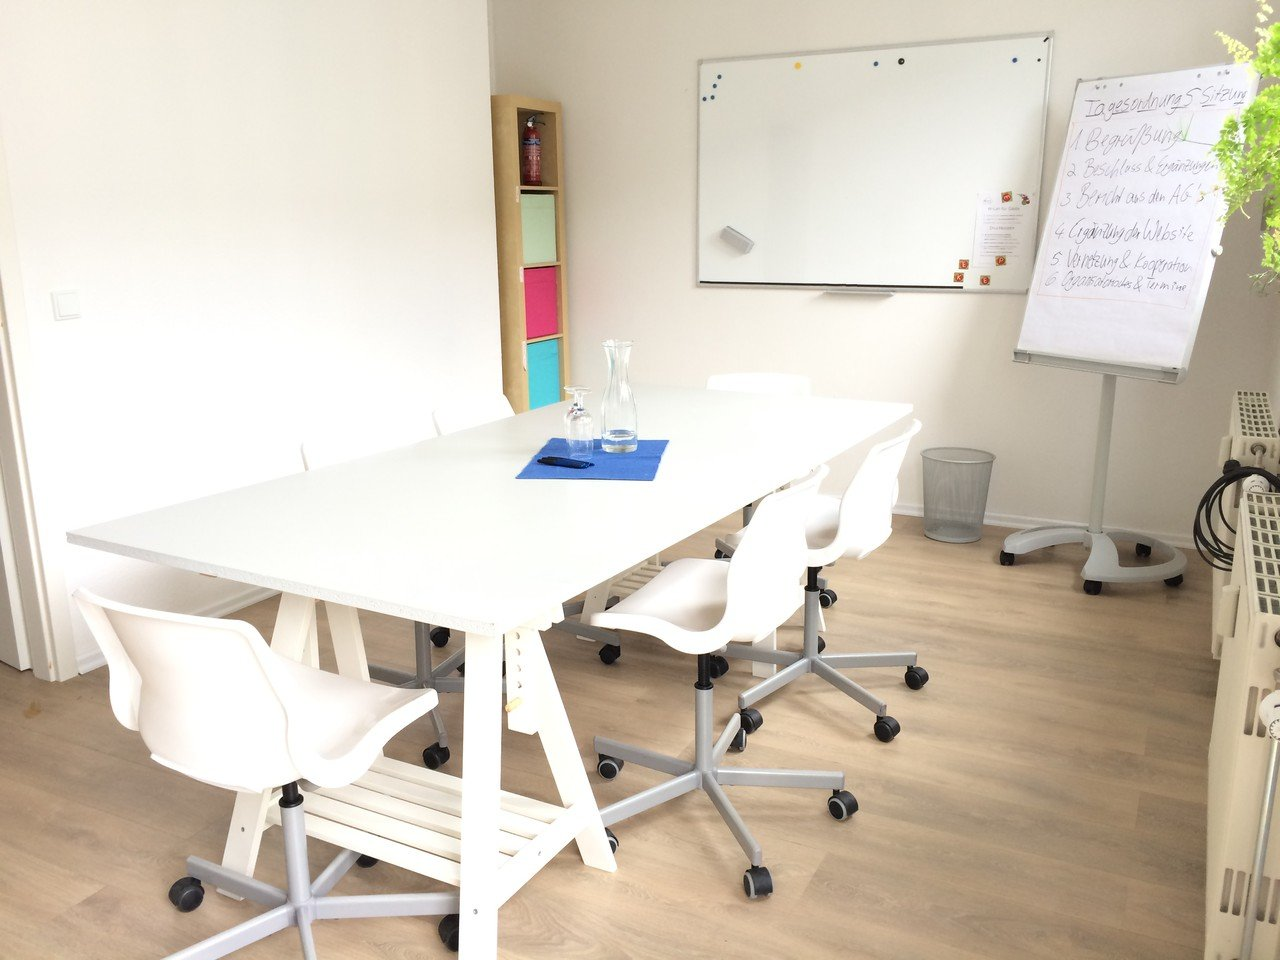 Dresden conference rooms Coworking Space Cloudsters - Meeting Raum image 8